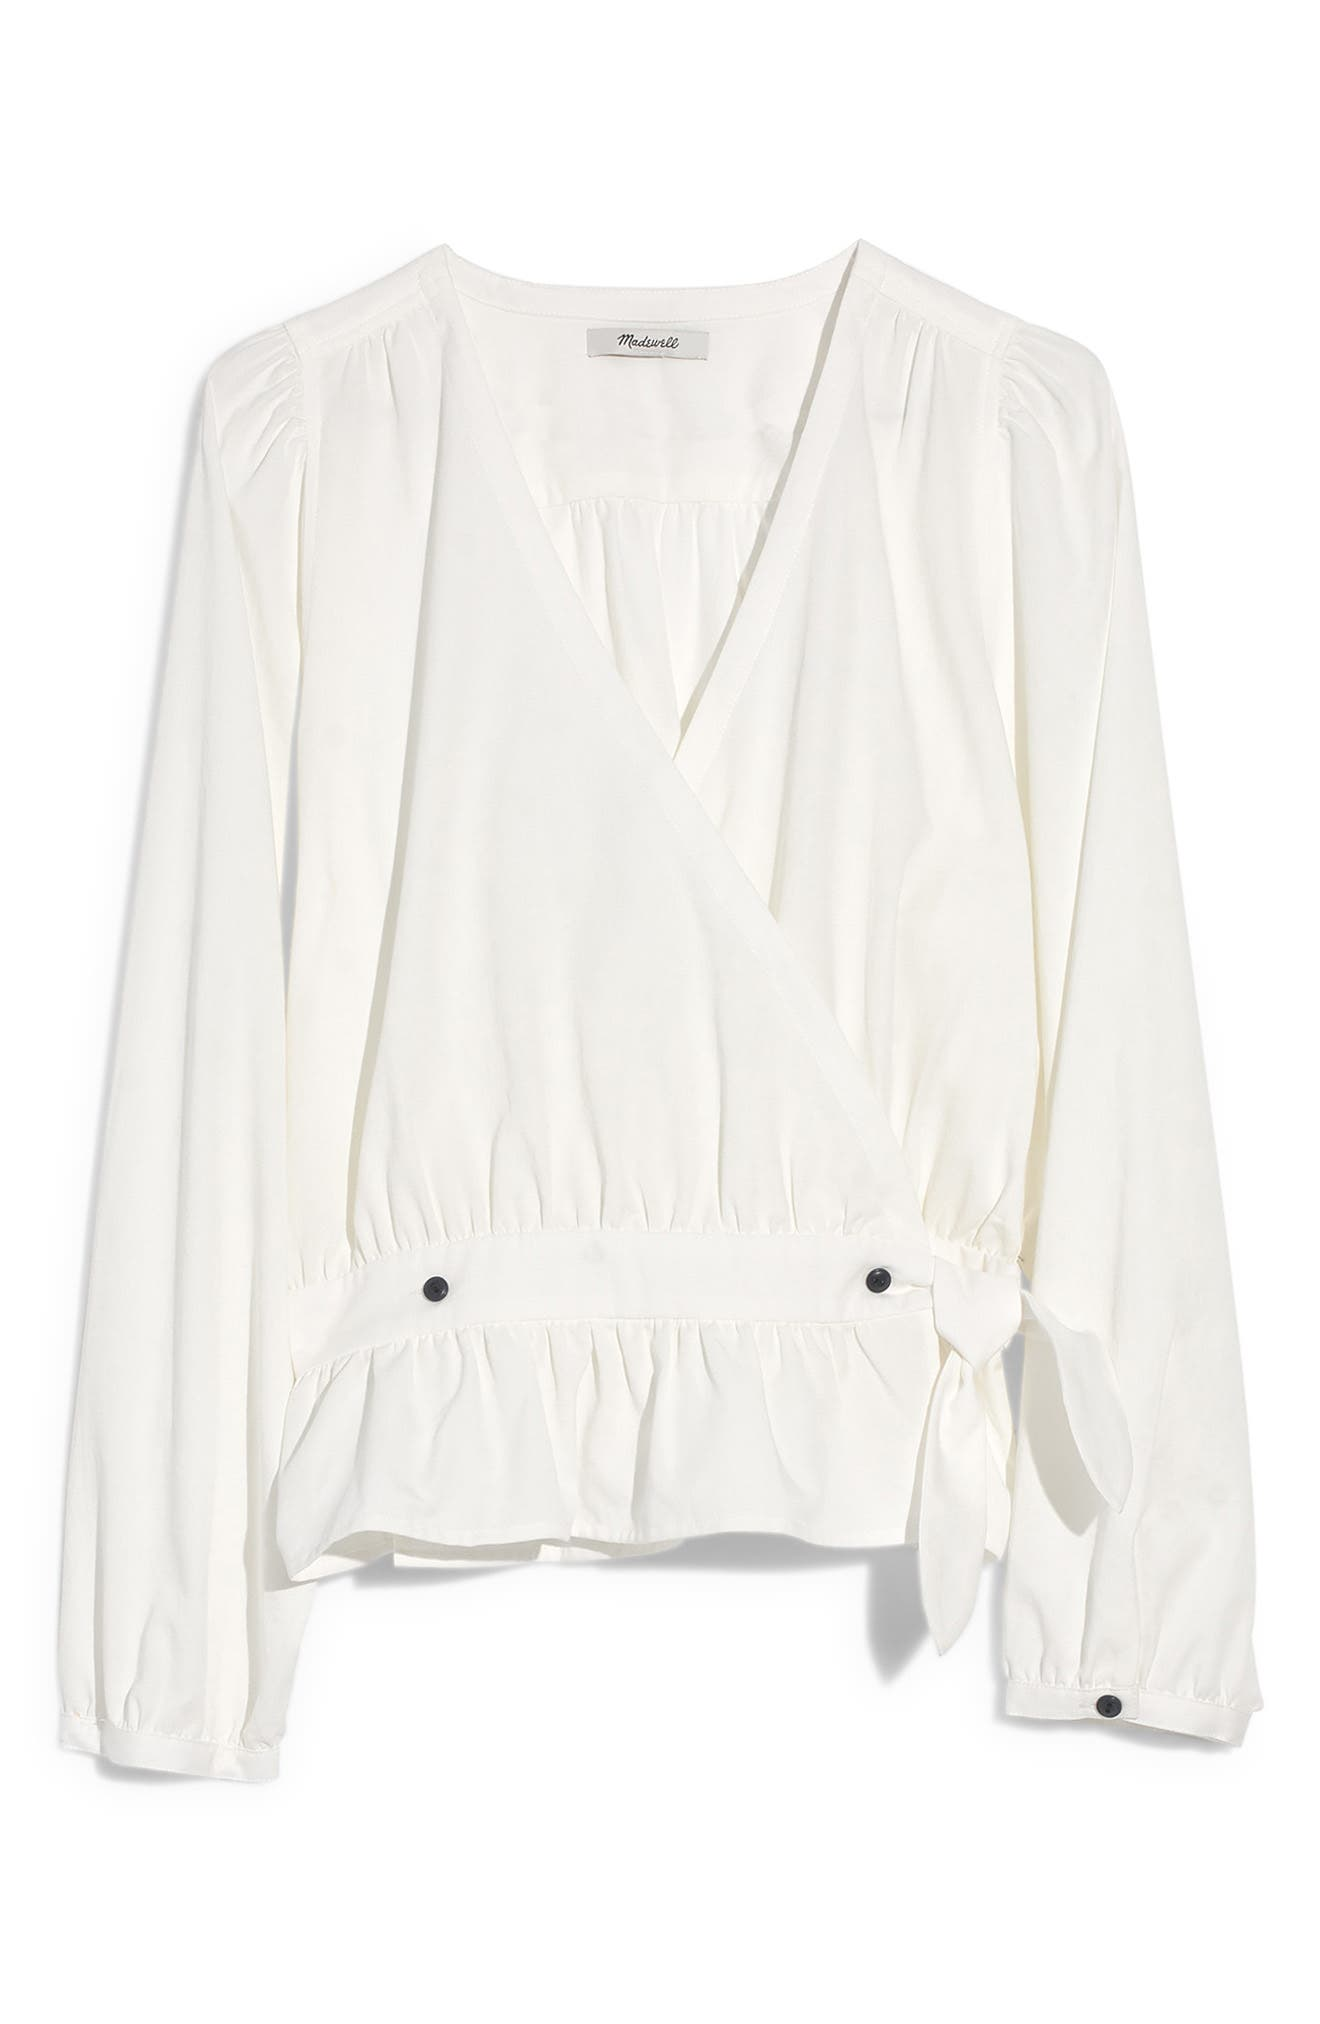 MADEWELL, Puff Sleeve Peplum Wrap Top, Alternate thumbnail 5, color, PURE WHITE